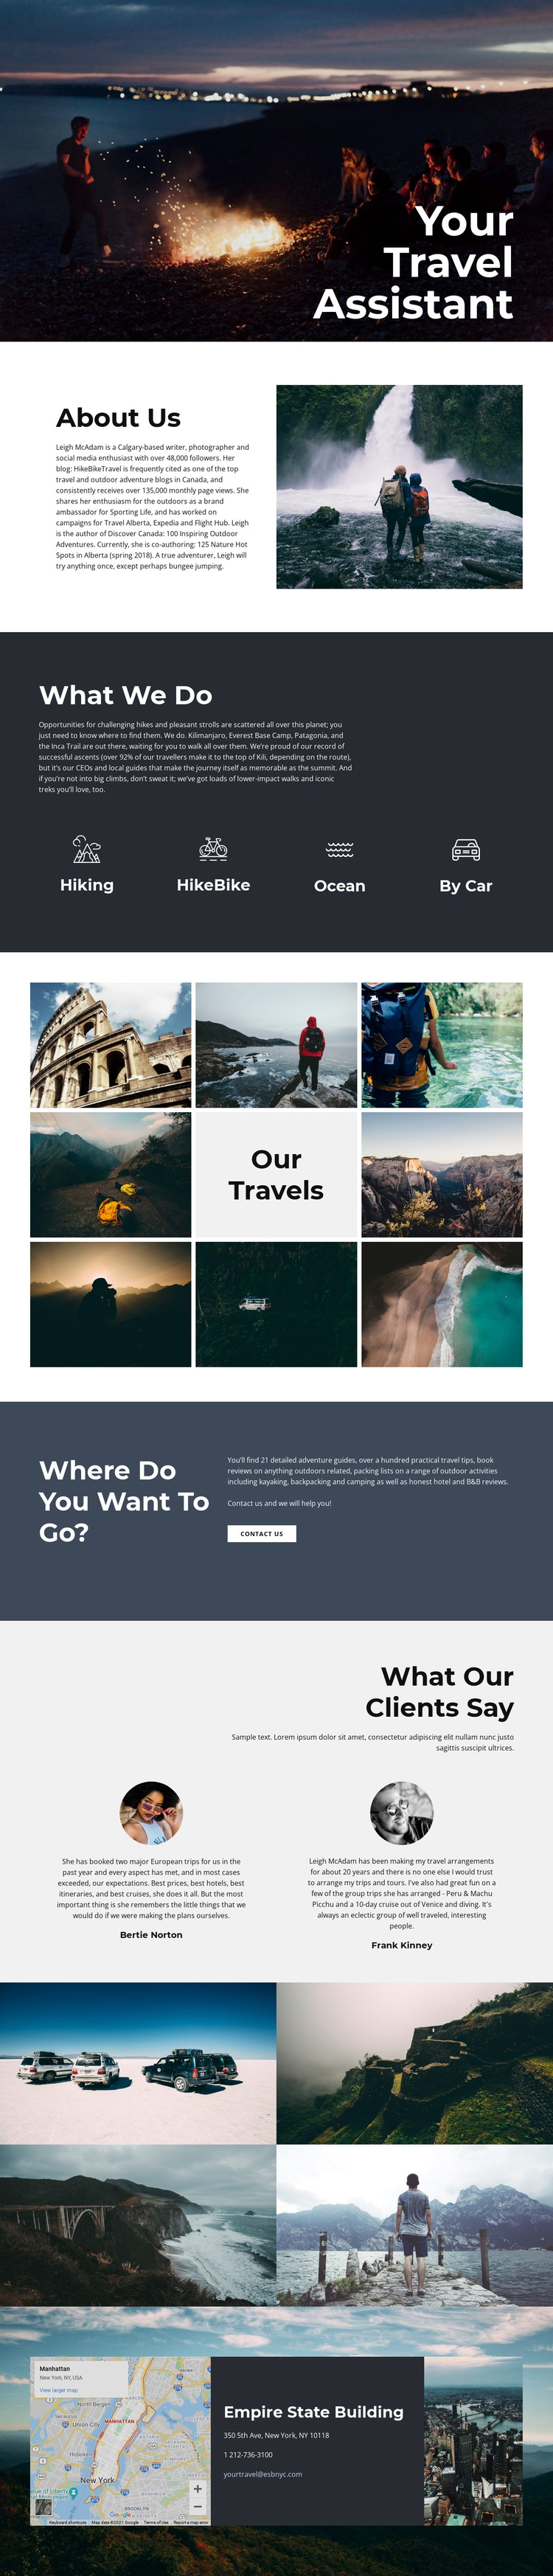 Travel Assistant HTML5 Template